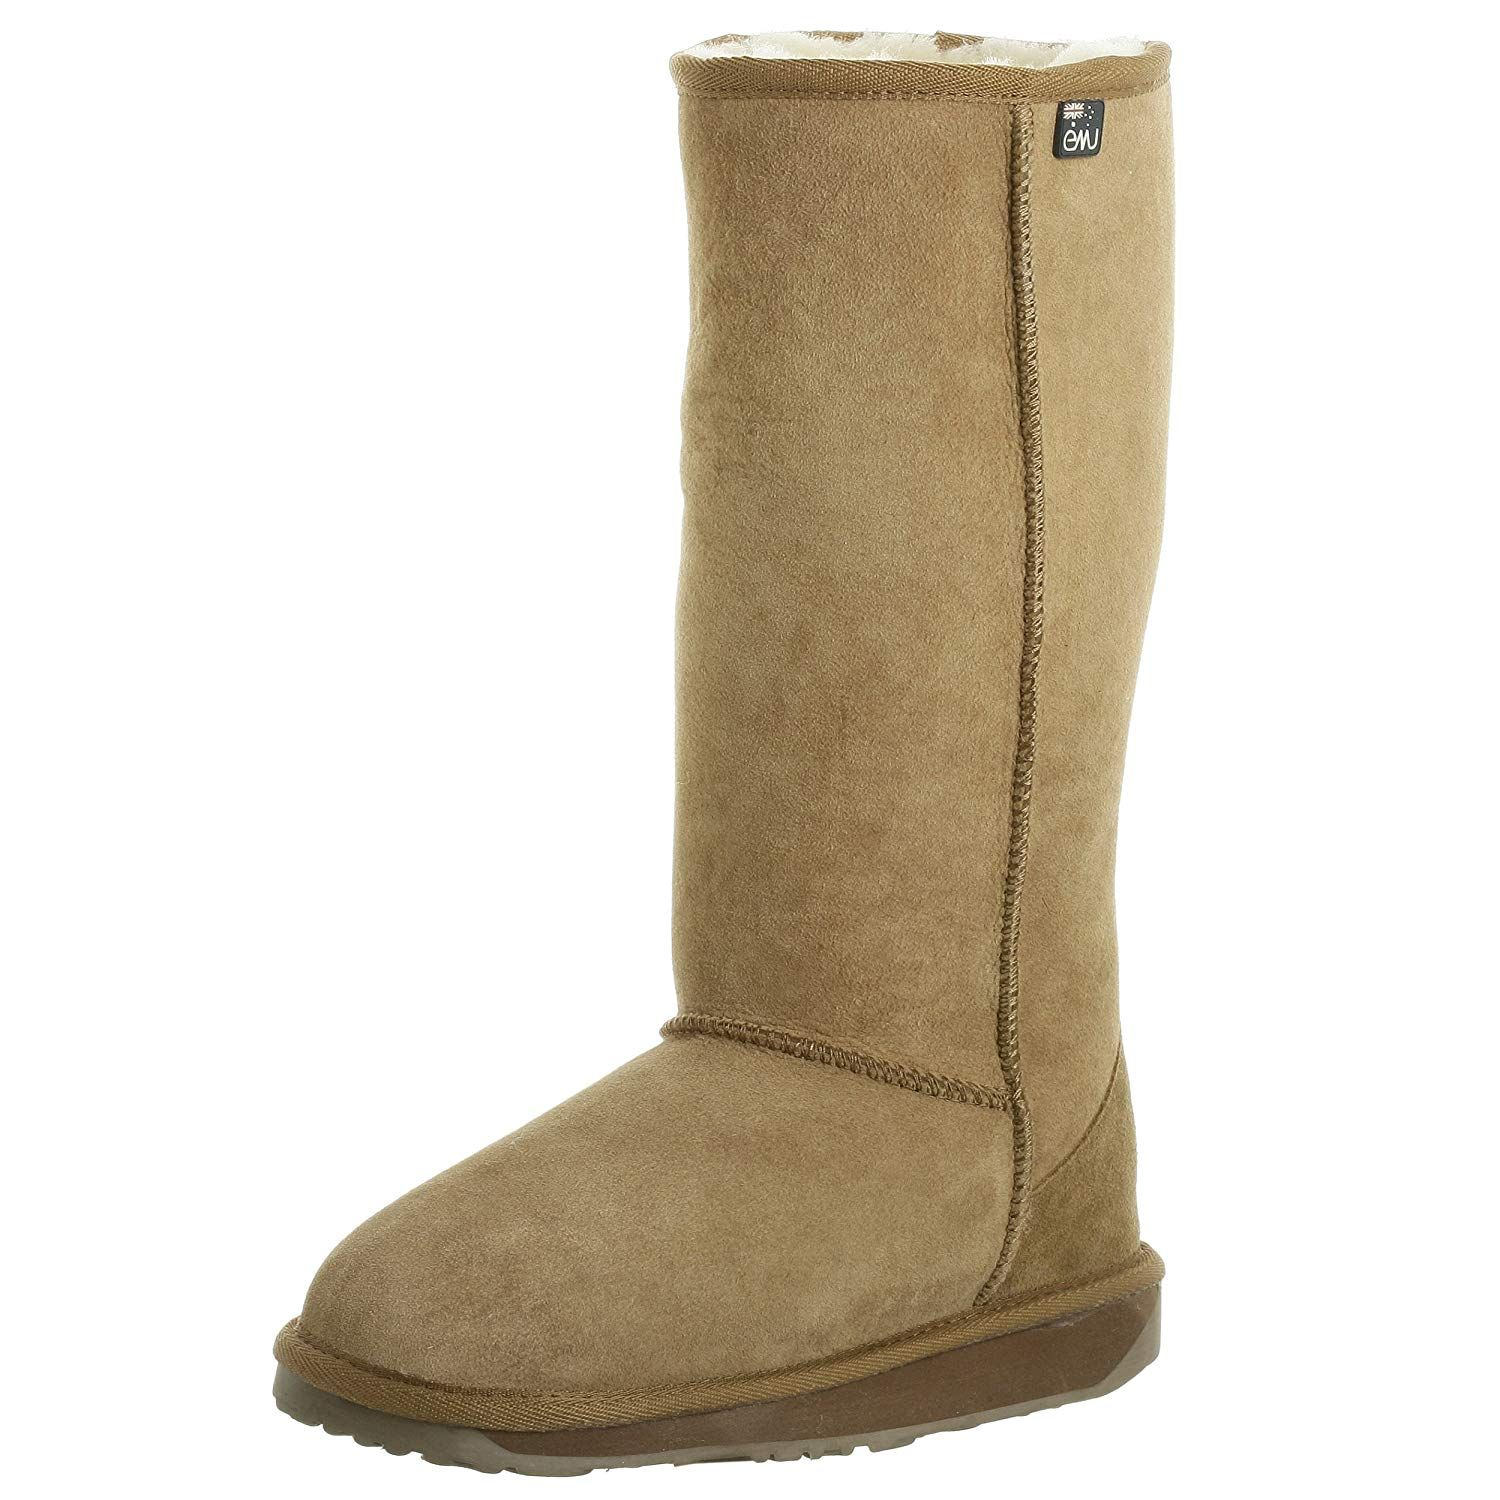 76f79e9409 EMU Australia Platinum Stinger Hi Womens Sheepskin Australian Made -  Chestnut Size 6 -- More info could be found at the image url.